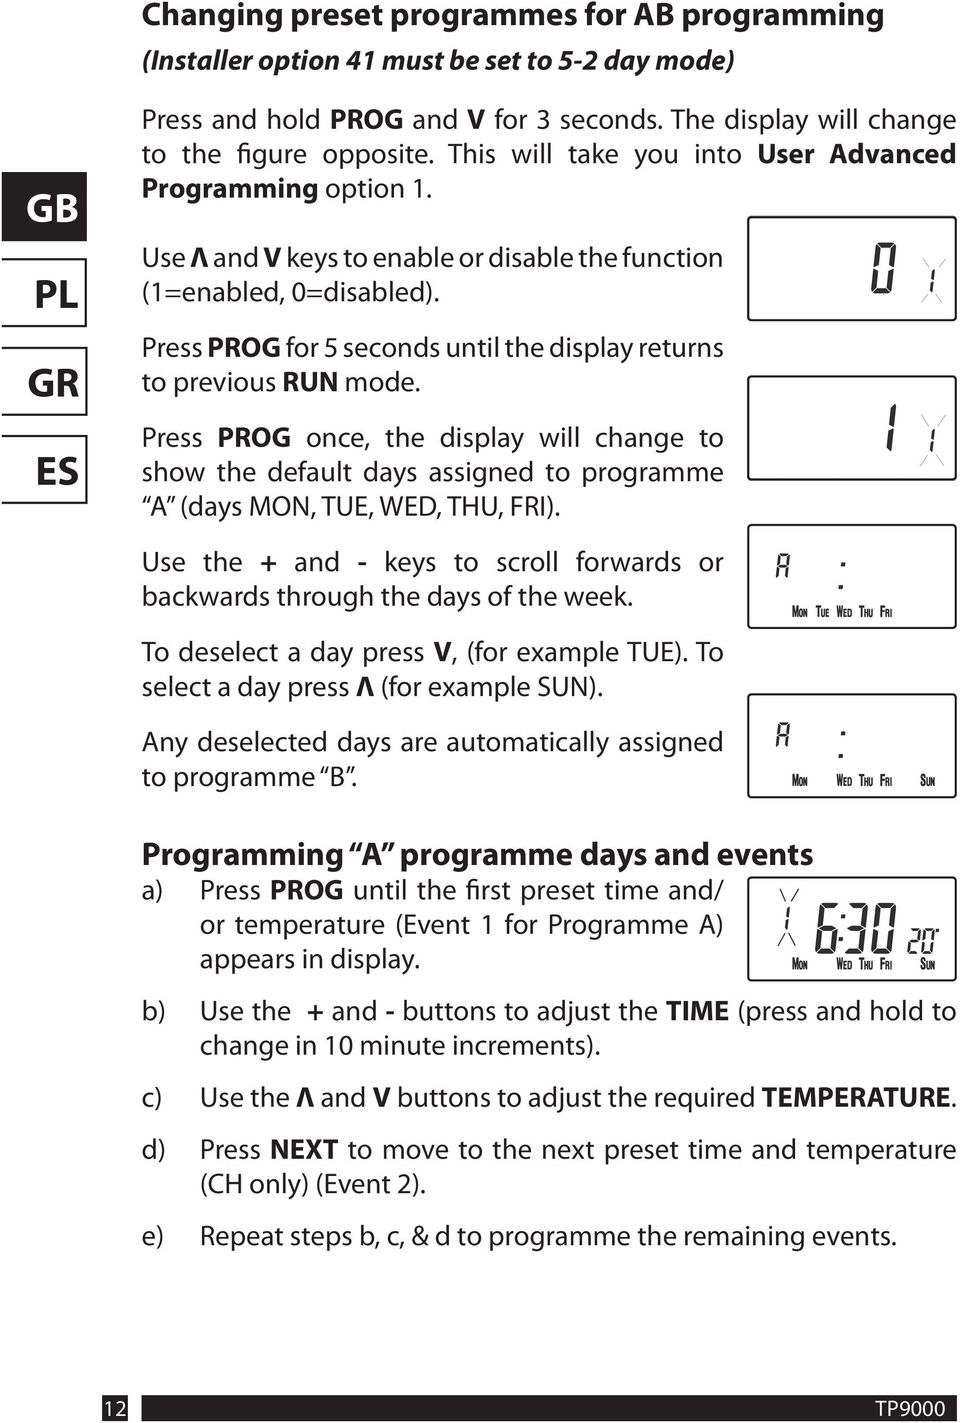 Press PROG for 5 seconds until the display returns to previous RUN mode. Press PROG once, the display will change to show the default days assigned to programme A (days MON, TUE, WED, THU, FRI).